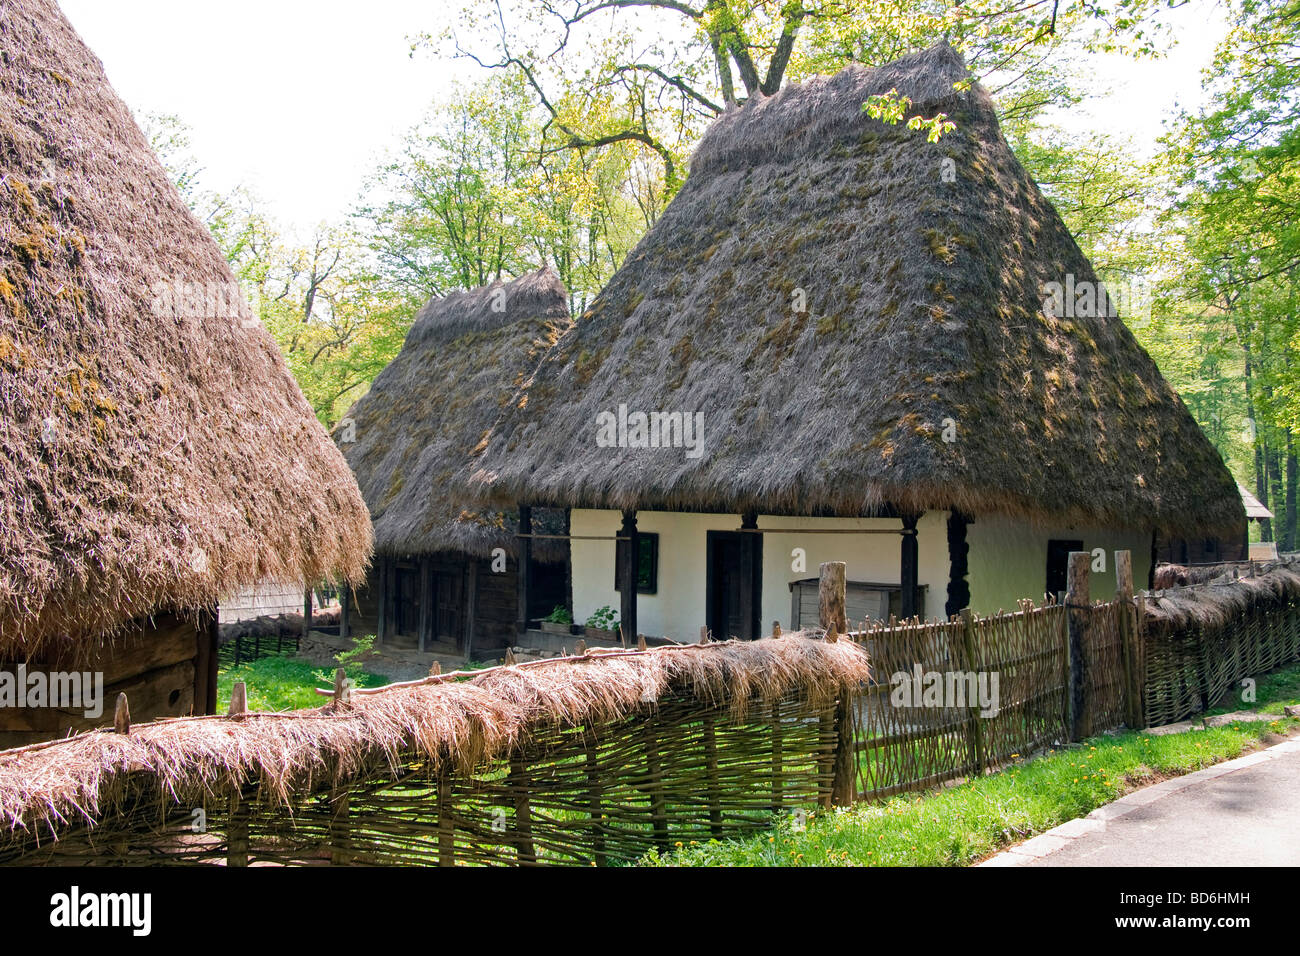 Romania's Museum of Traditional Folk Civilization, peasant homestead with thatch roof dwelling, at Sibiu in - Stock Image